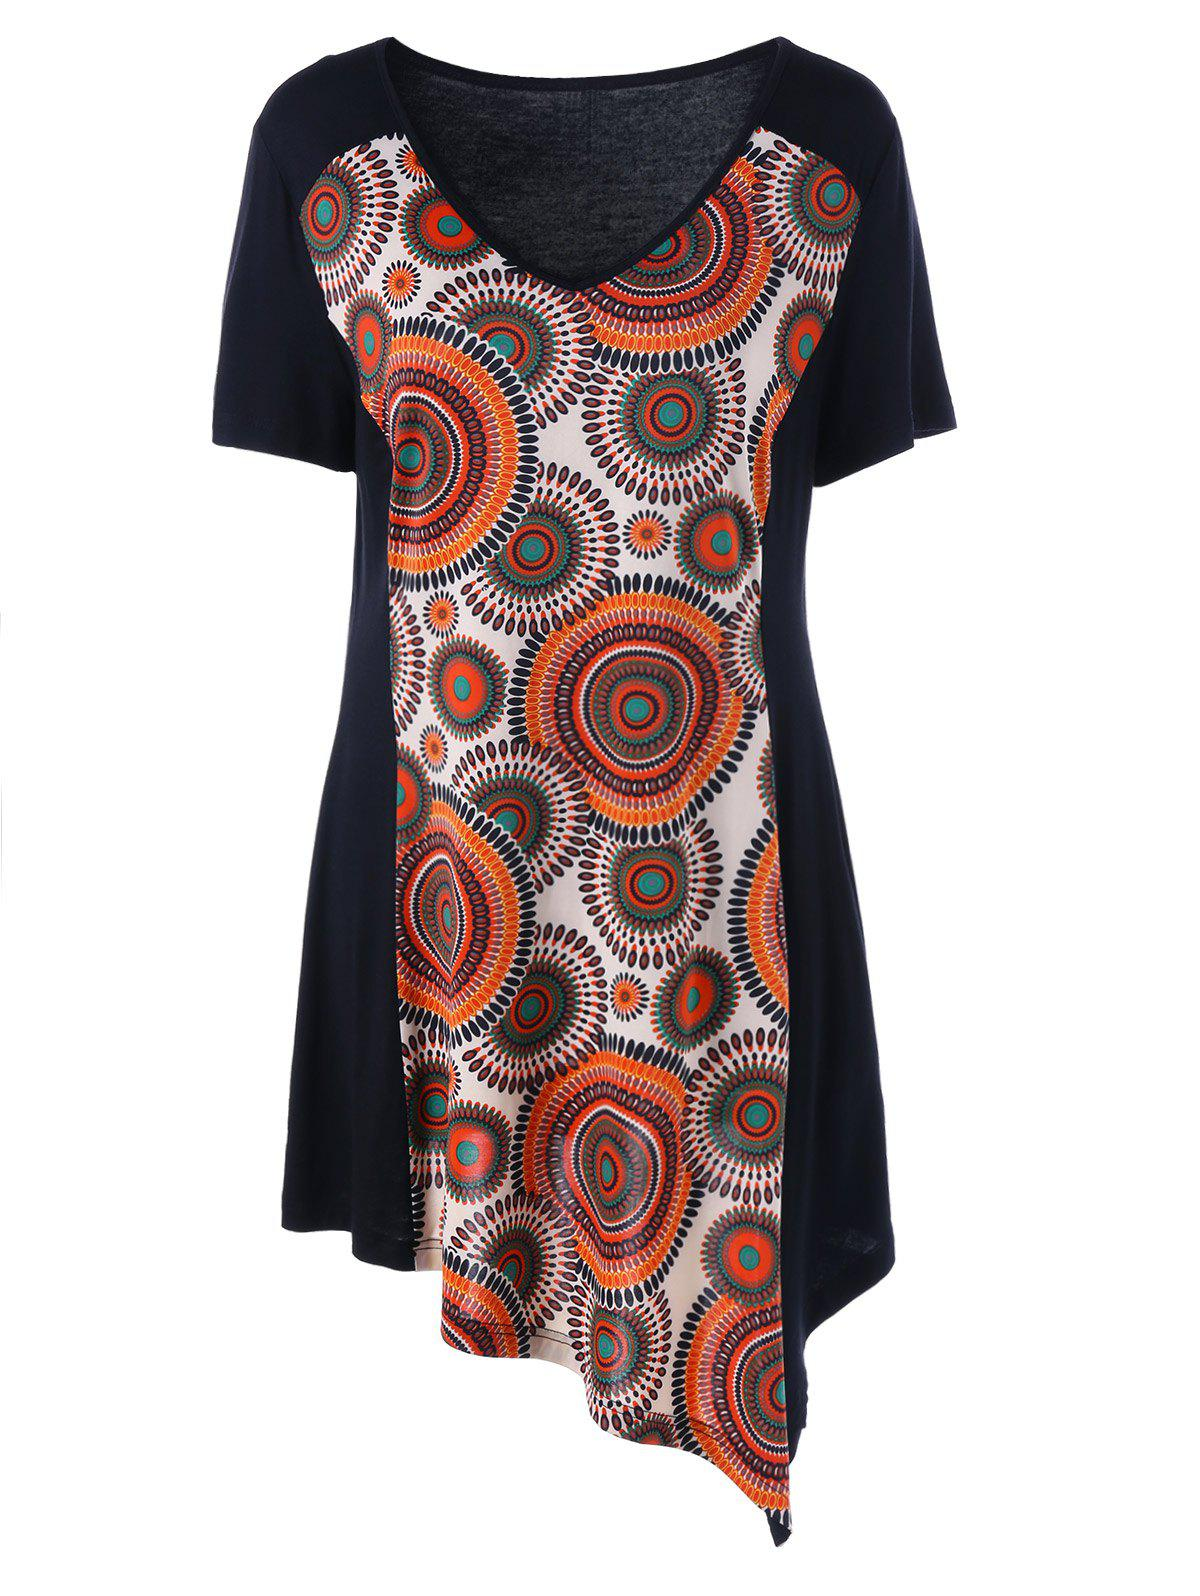 Plus Size V Neck Asymmetirc T-ShirtWOMEN<br><br>Size: 5XL; Color: BLACK; Material: Rayon,Spandex; Shirt Length: Long; Sleeve Length: Short; Collar: V-Neck; Style: Casual; Season: Summer; Pattern Type: Others; Weight: 0.3400kg; Package Contents: 1 x T-Shirt;